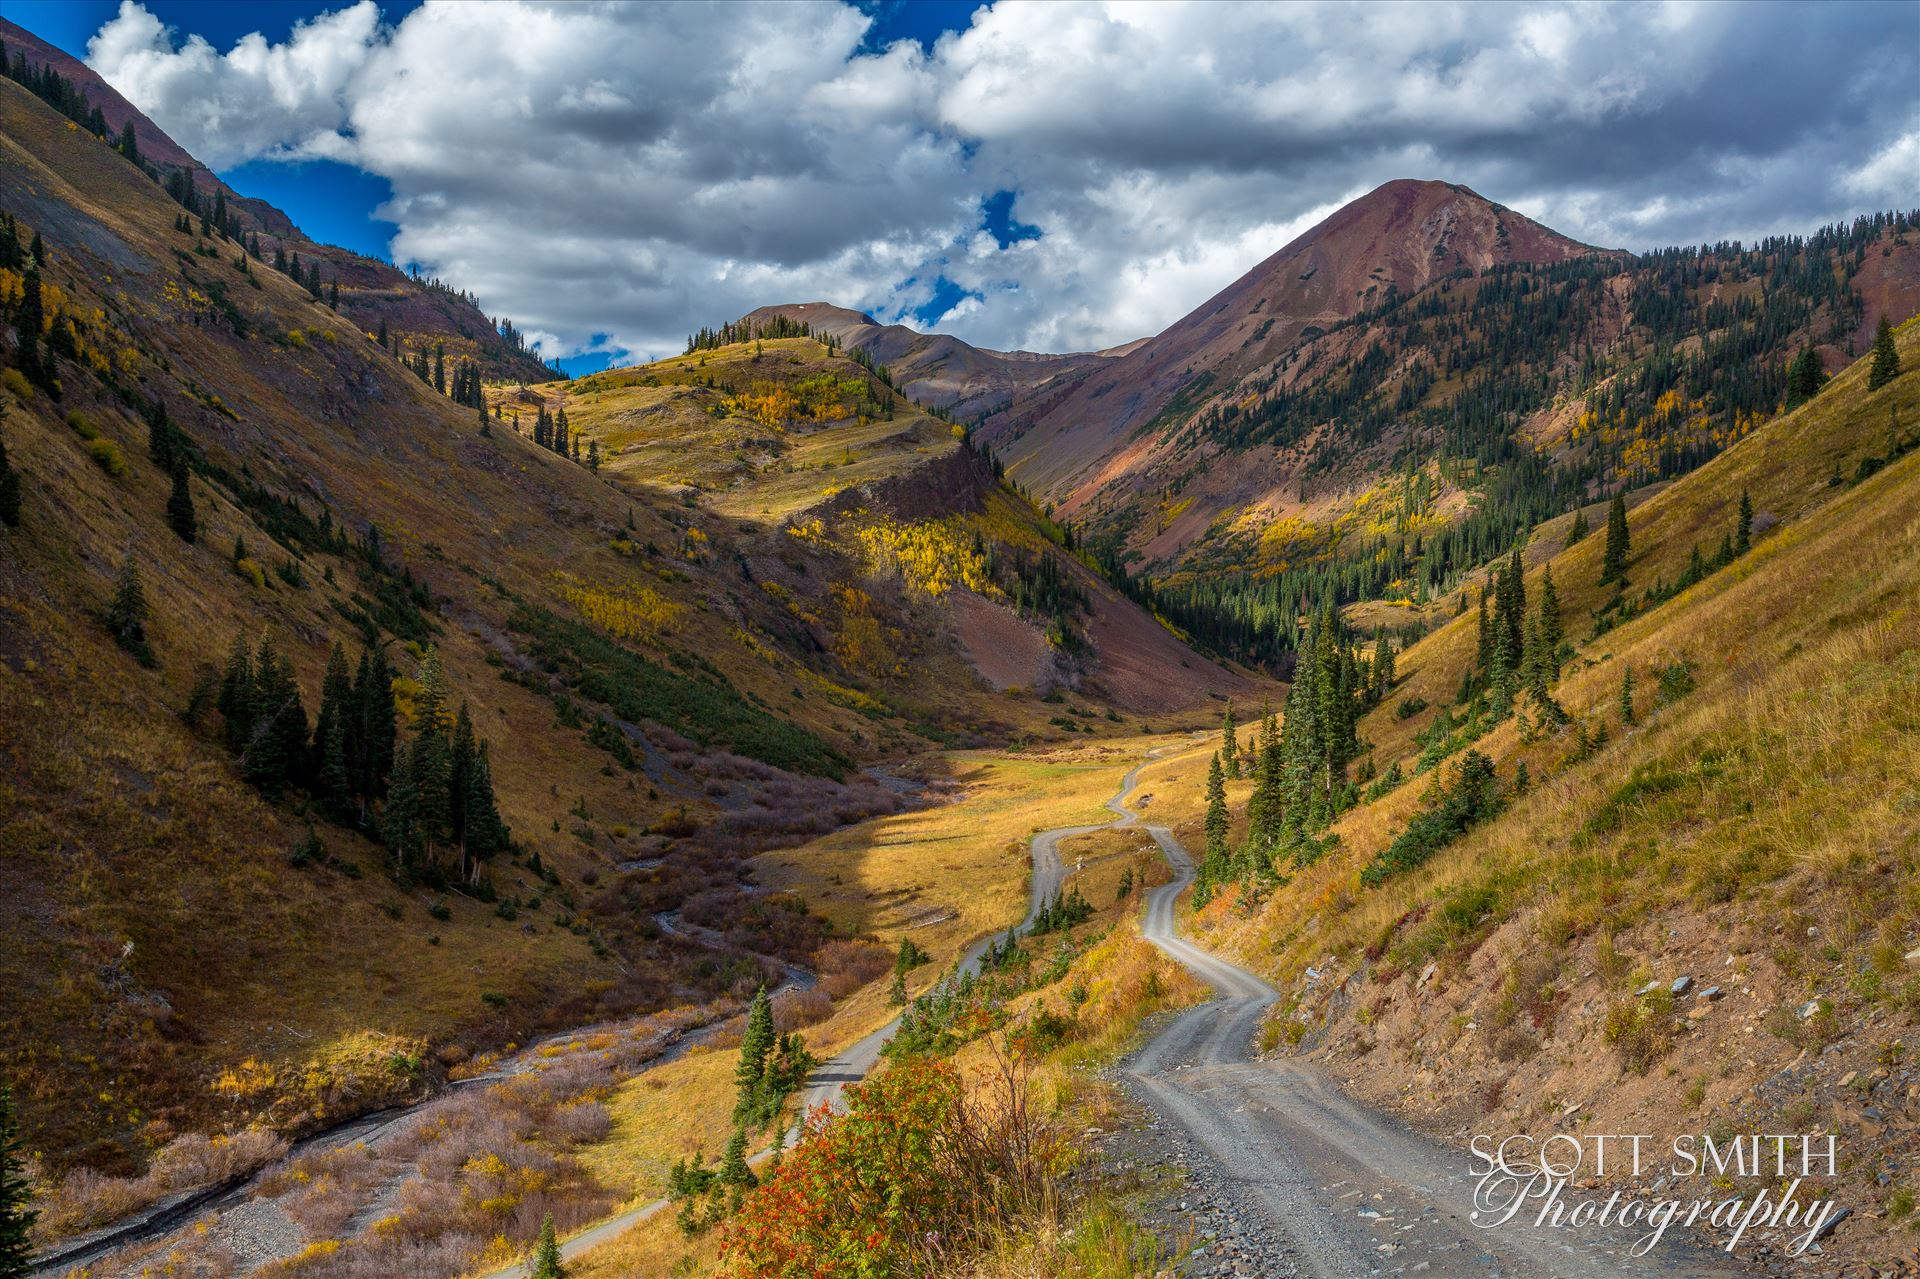 Mount Baldy from Washington Gulch - Mount Baldy, the reddish colored mountain the background, from Washington Gulch. Just outside of Crested Butte, Colorado on Schofield Pass. by D Scott Smith